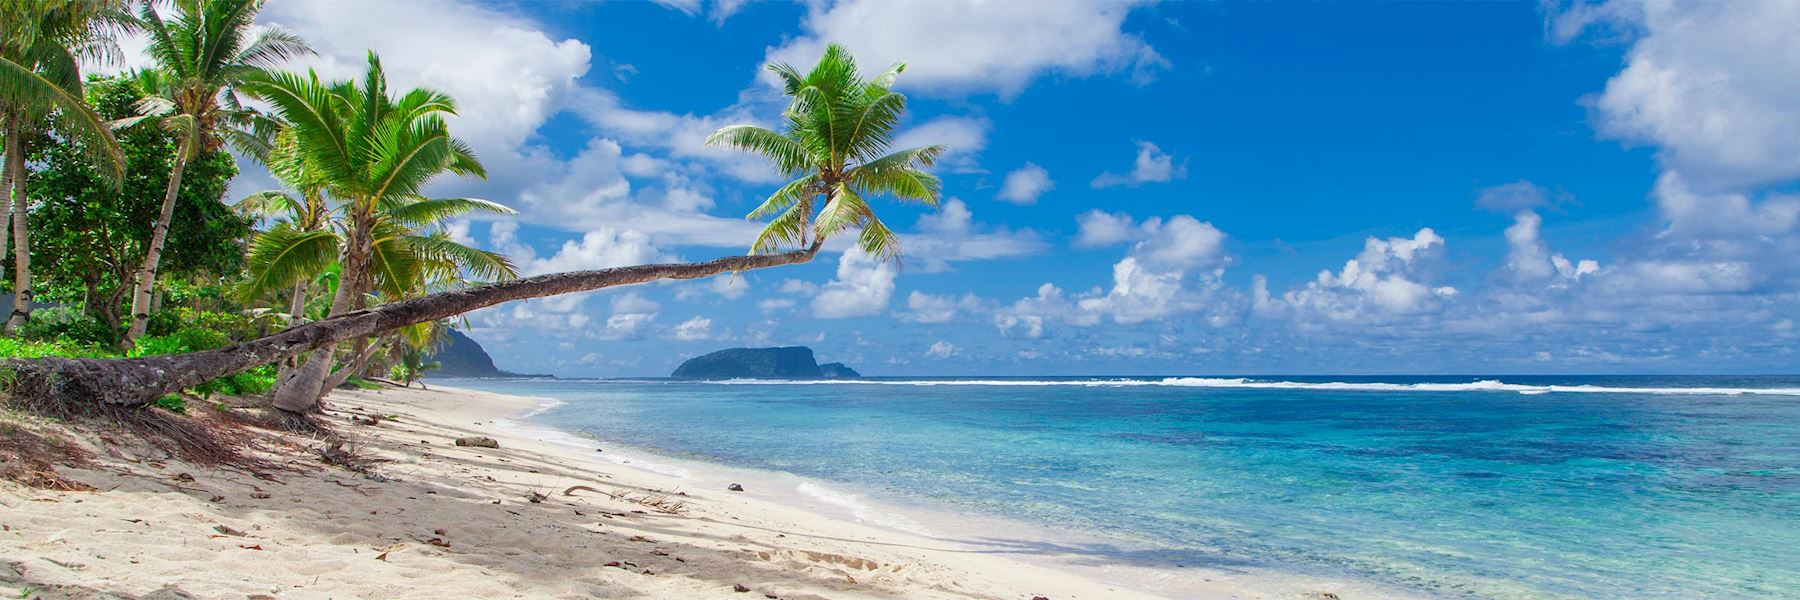 When is the best time to visit Samoa?